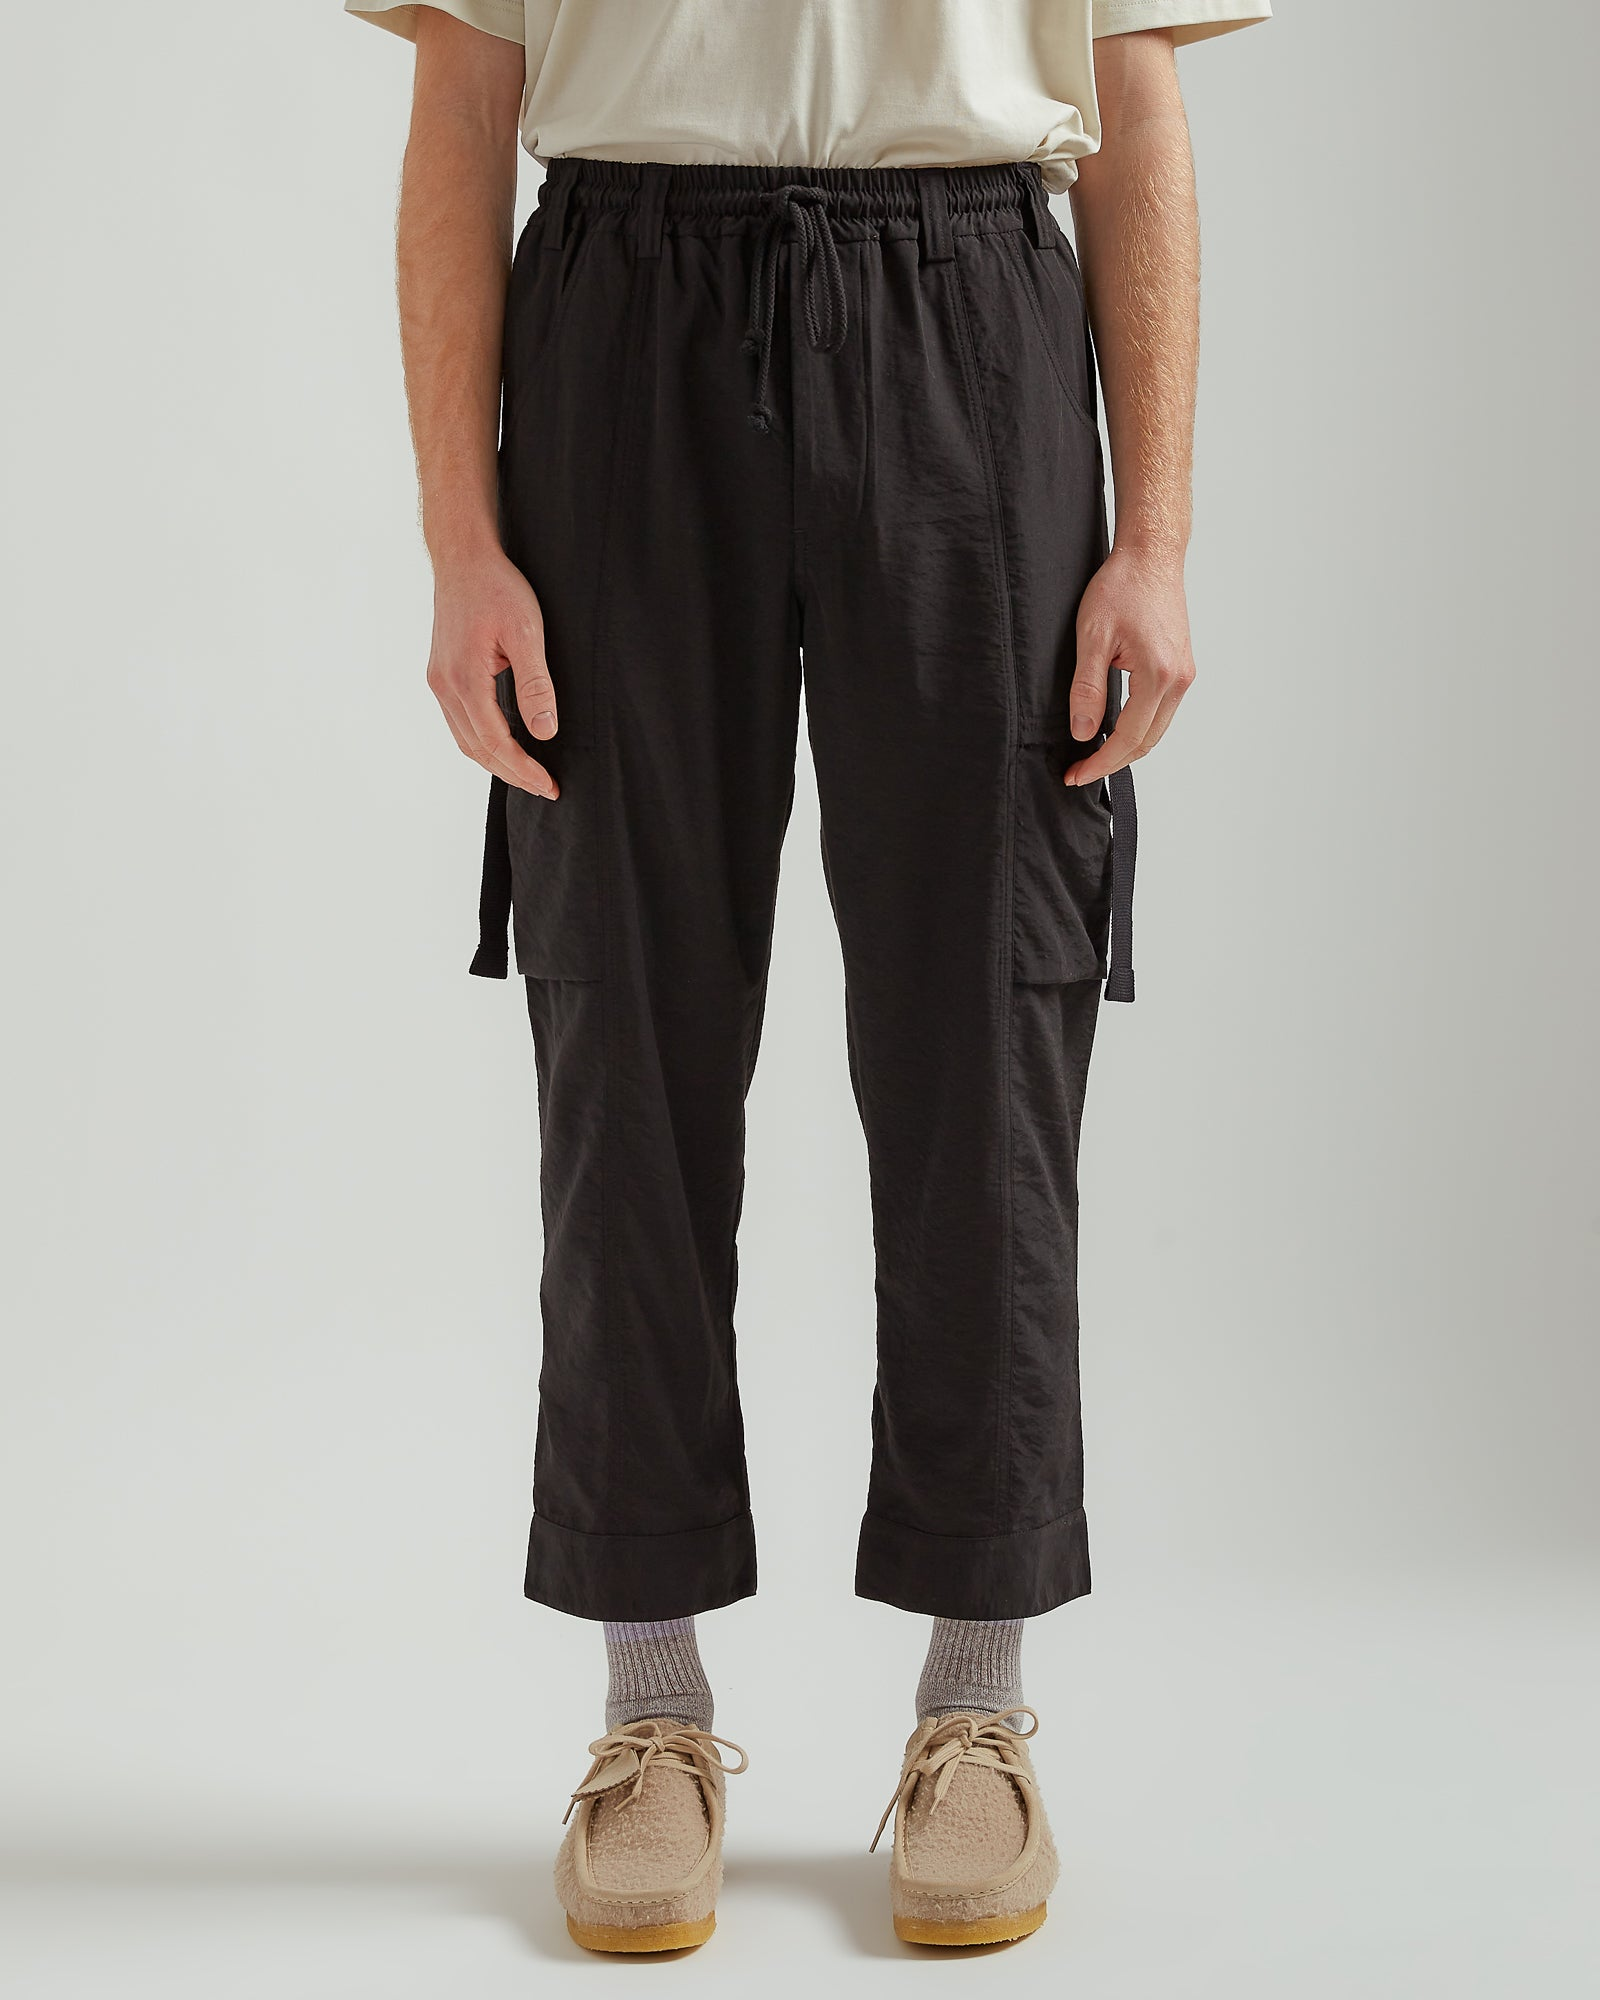 Tabbed Cargo Pant in Black